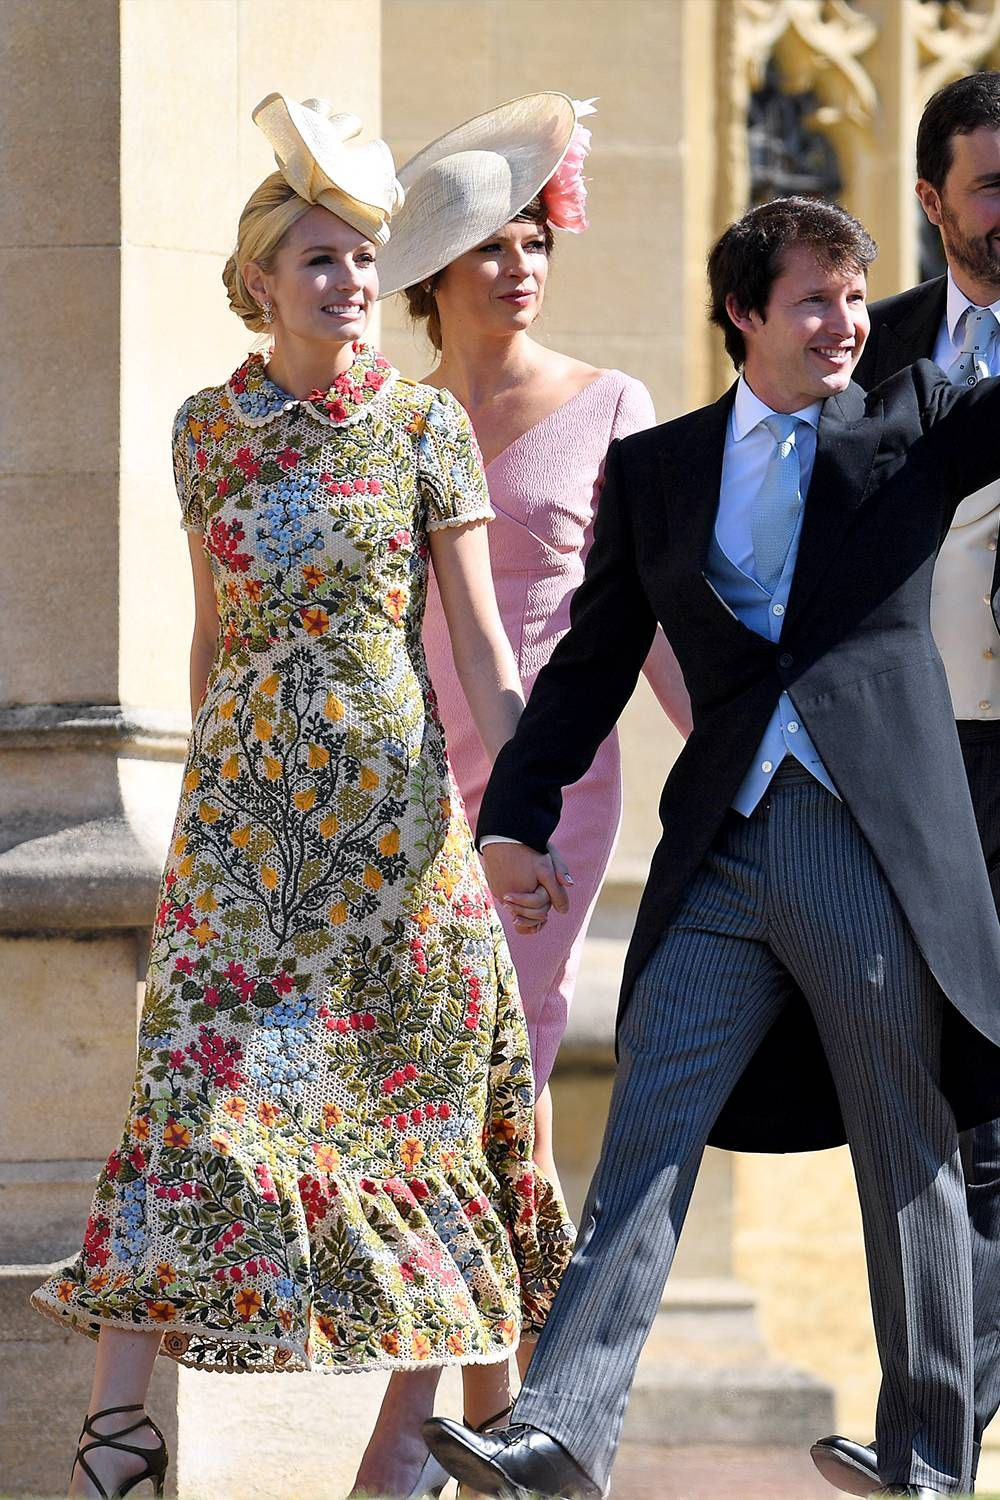 30 Insanely Chic Royal Wedding Guests That Really Brought Their A Game Wedding Guest Outfit Royal Wedding Outfits Royal Wedding Guests Outfits [ 1500 x 1000 Pixel ]